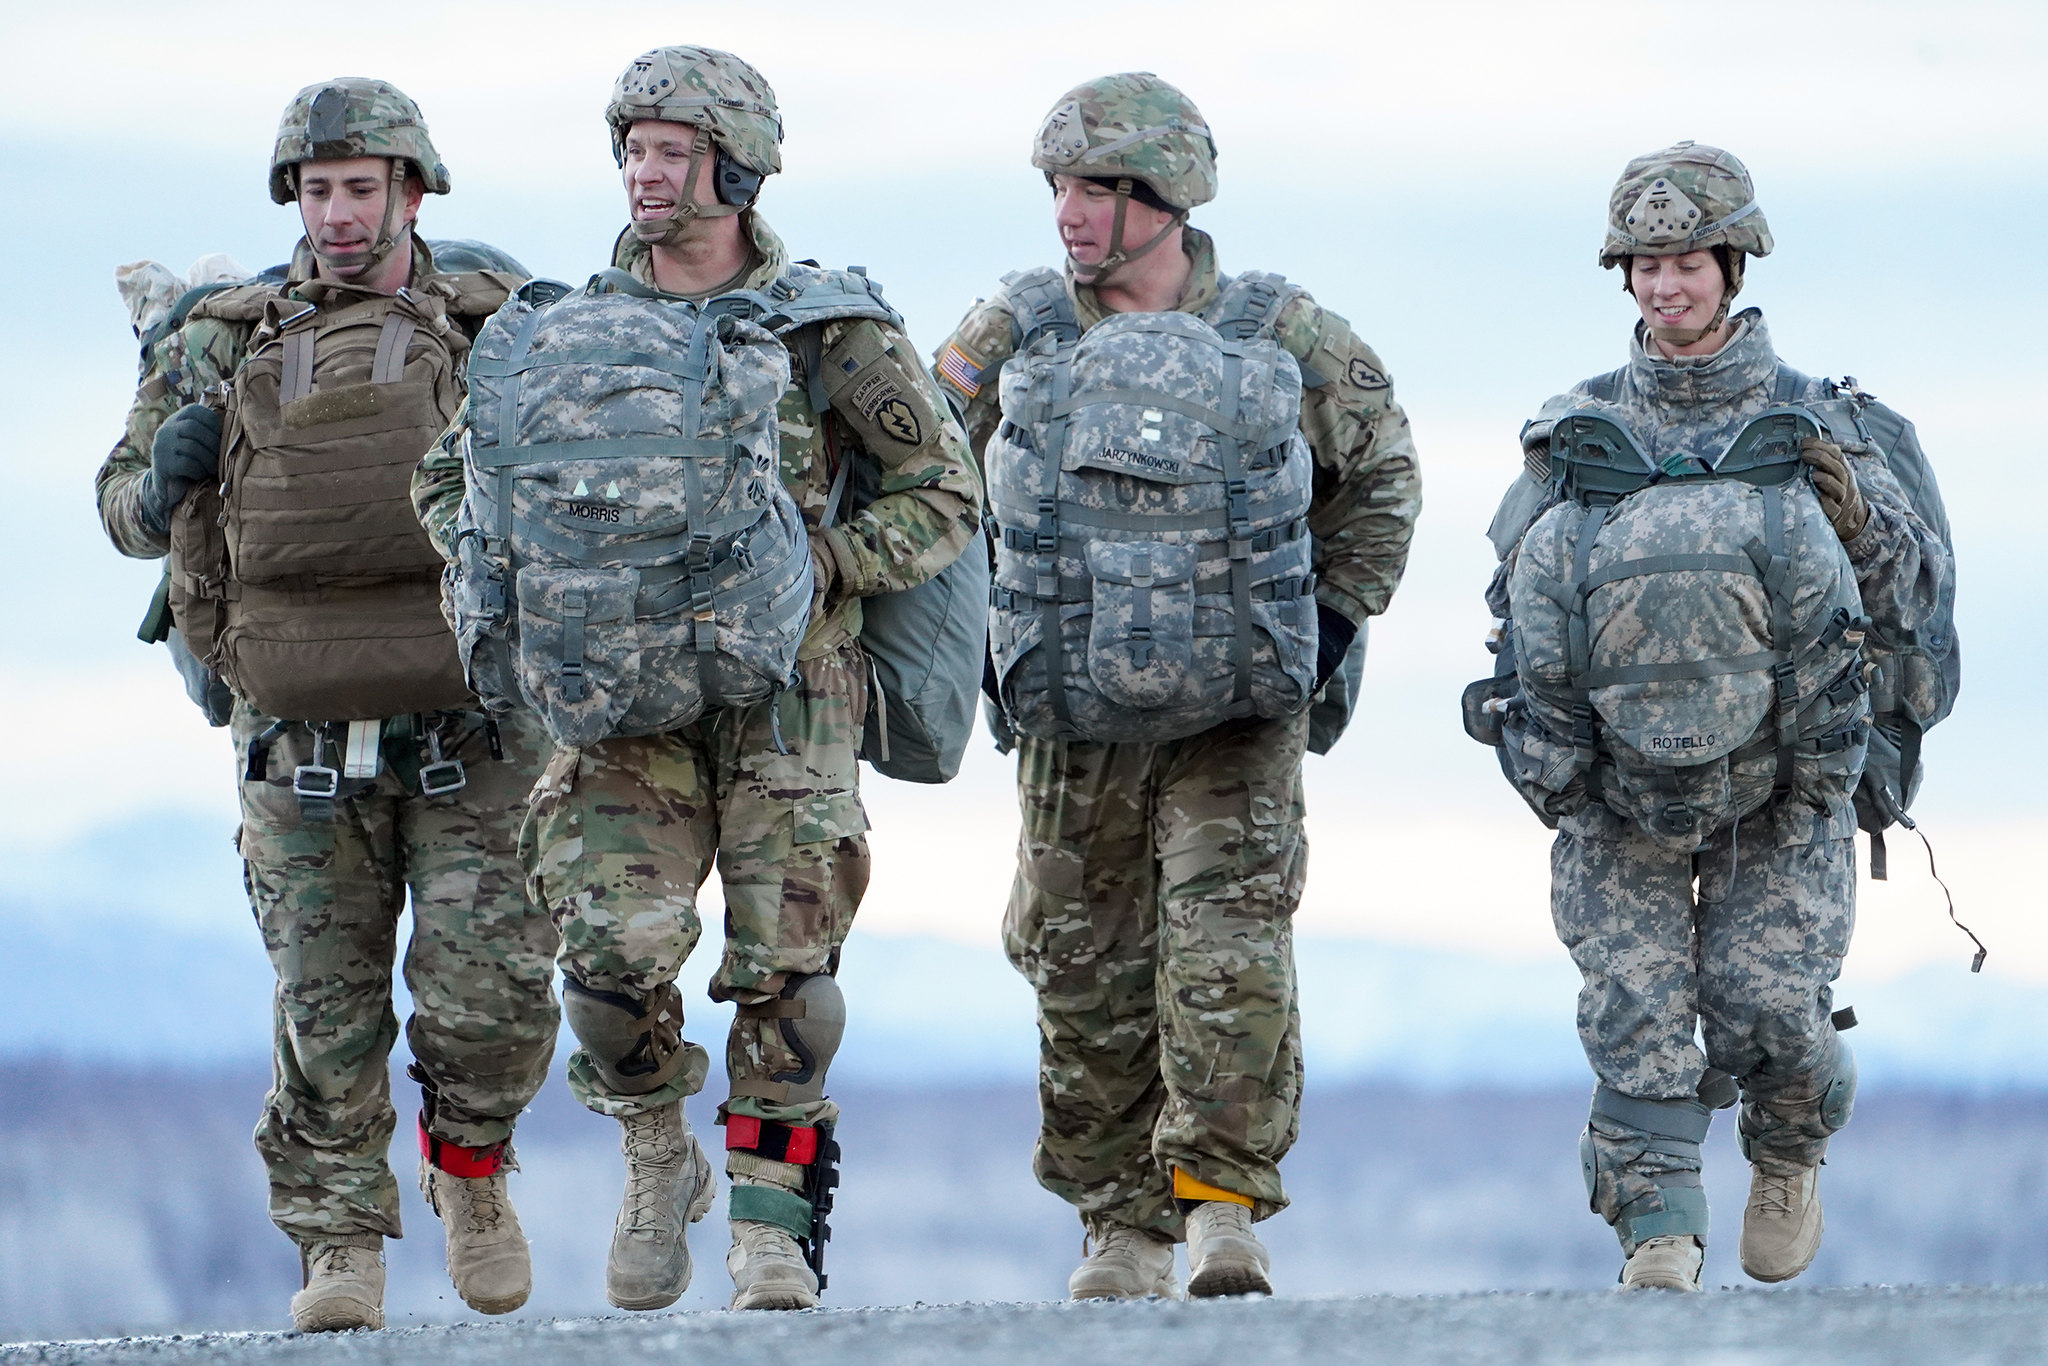 Soldiers make their way to a rally point after conducting a parachute jump on Malemute drop zone at Joint Base Elmendorf-Richardson, Alaska, Dec. 11, 2019. (Justin Connaher/Air Force)